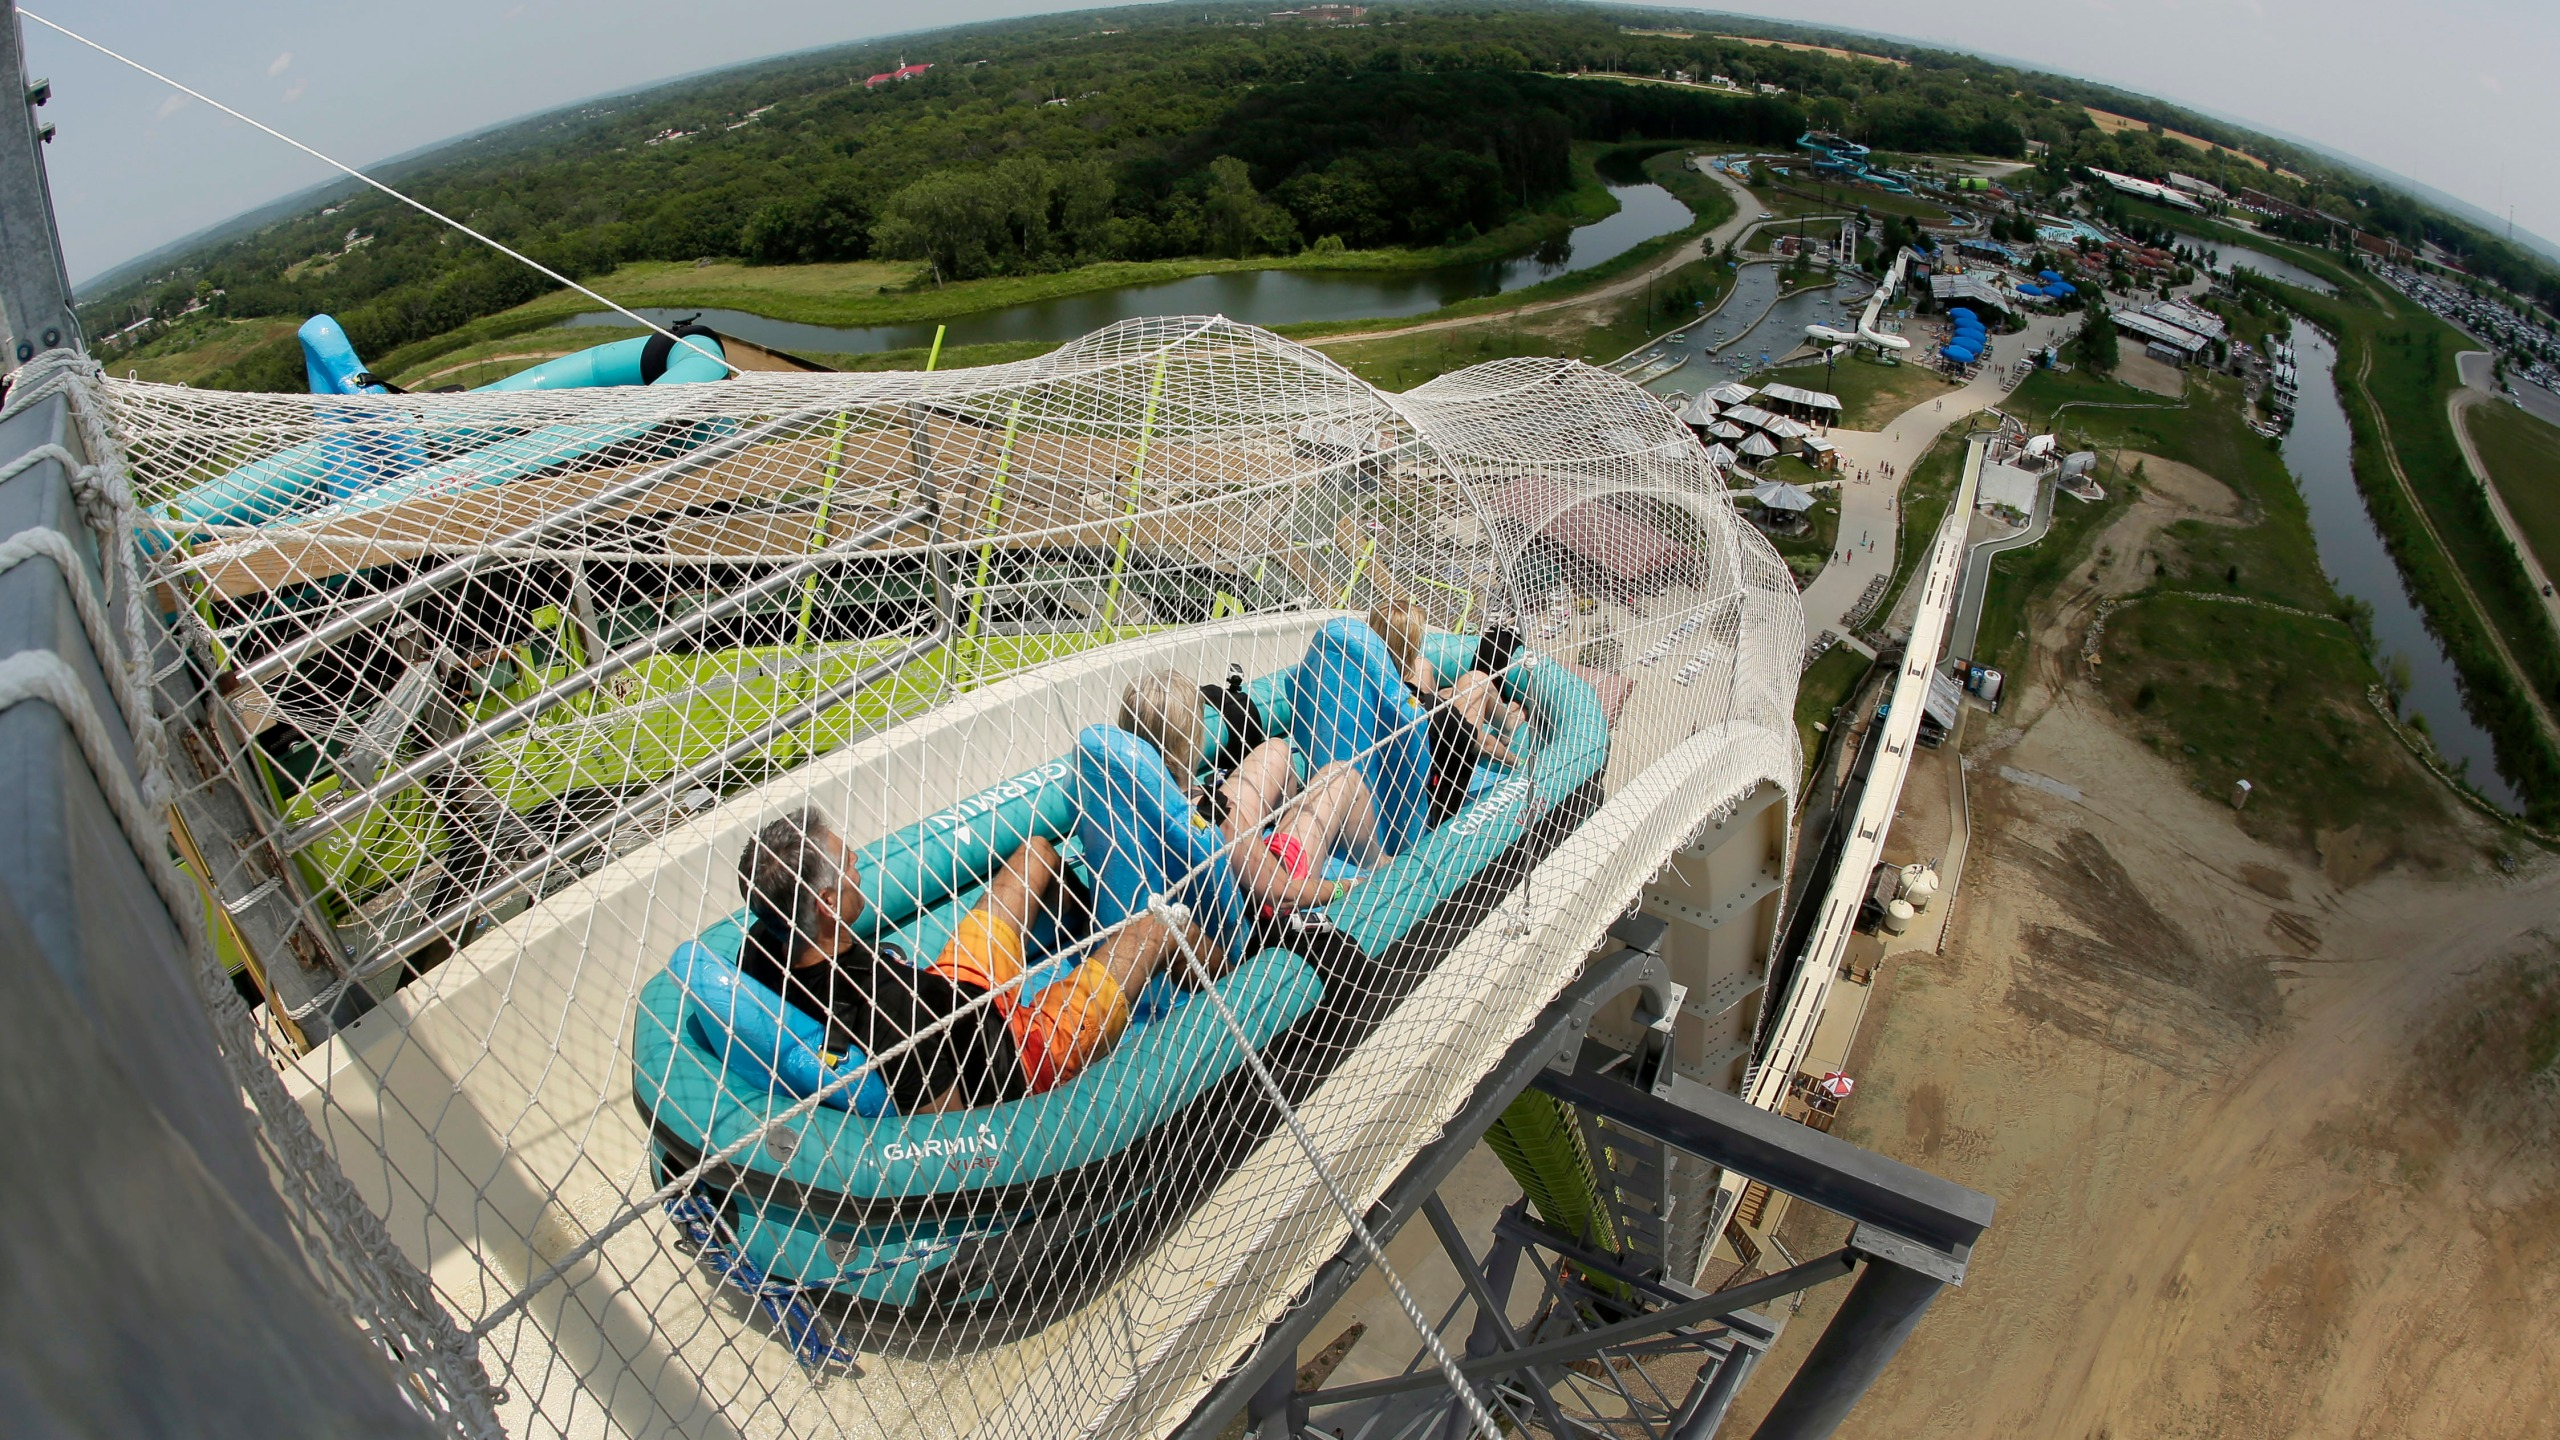 Water Park Fatality Charge_1521858015599